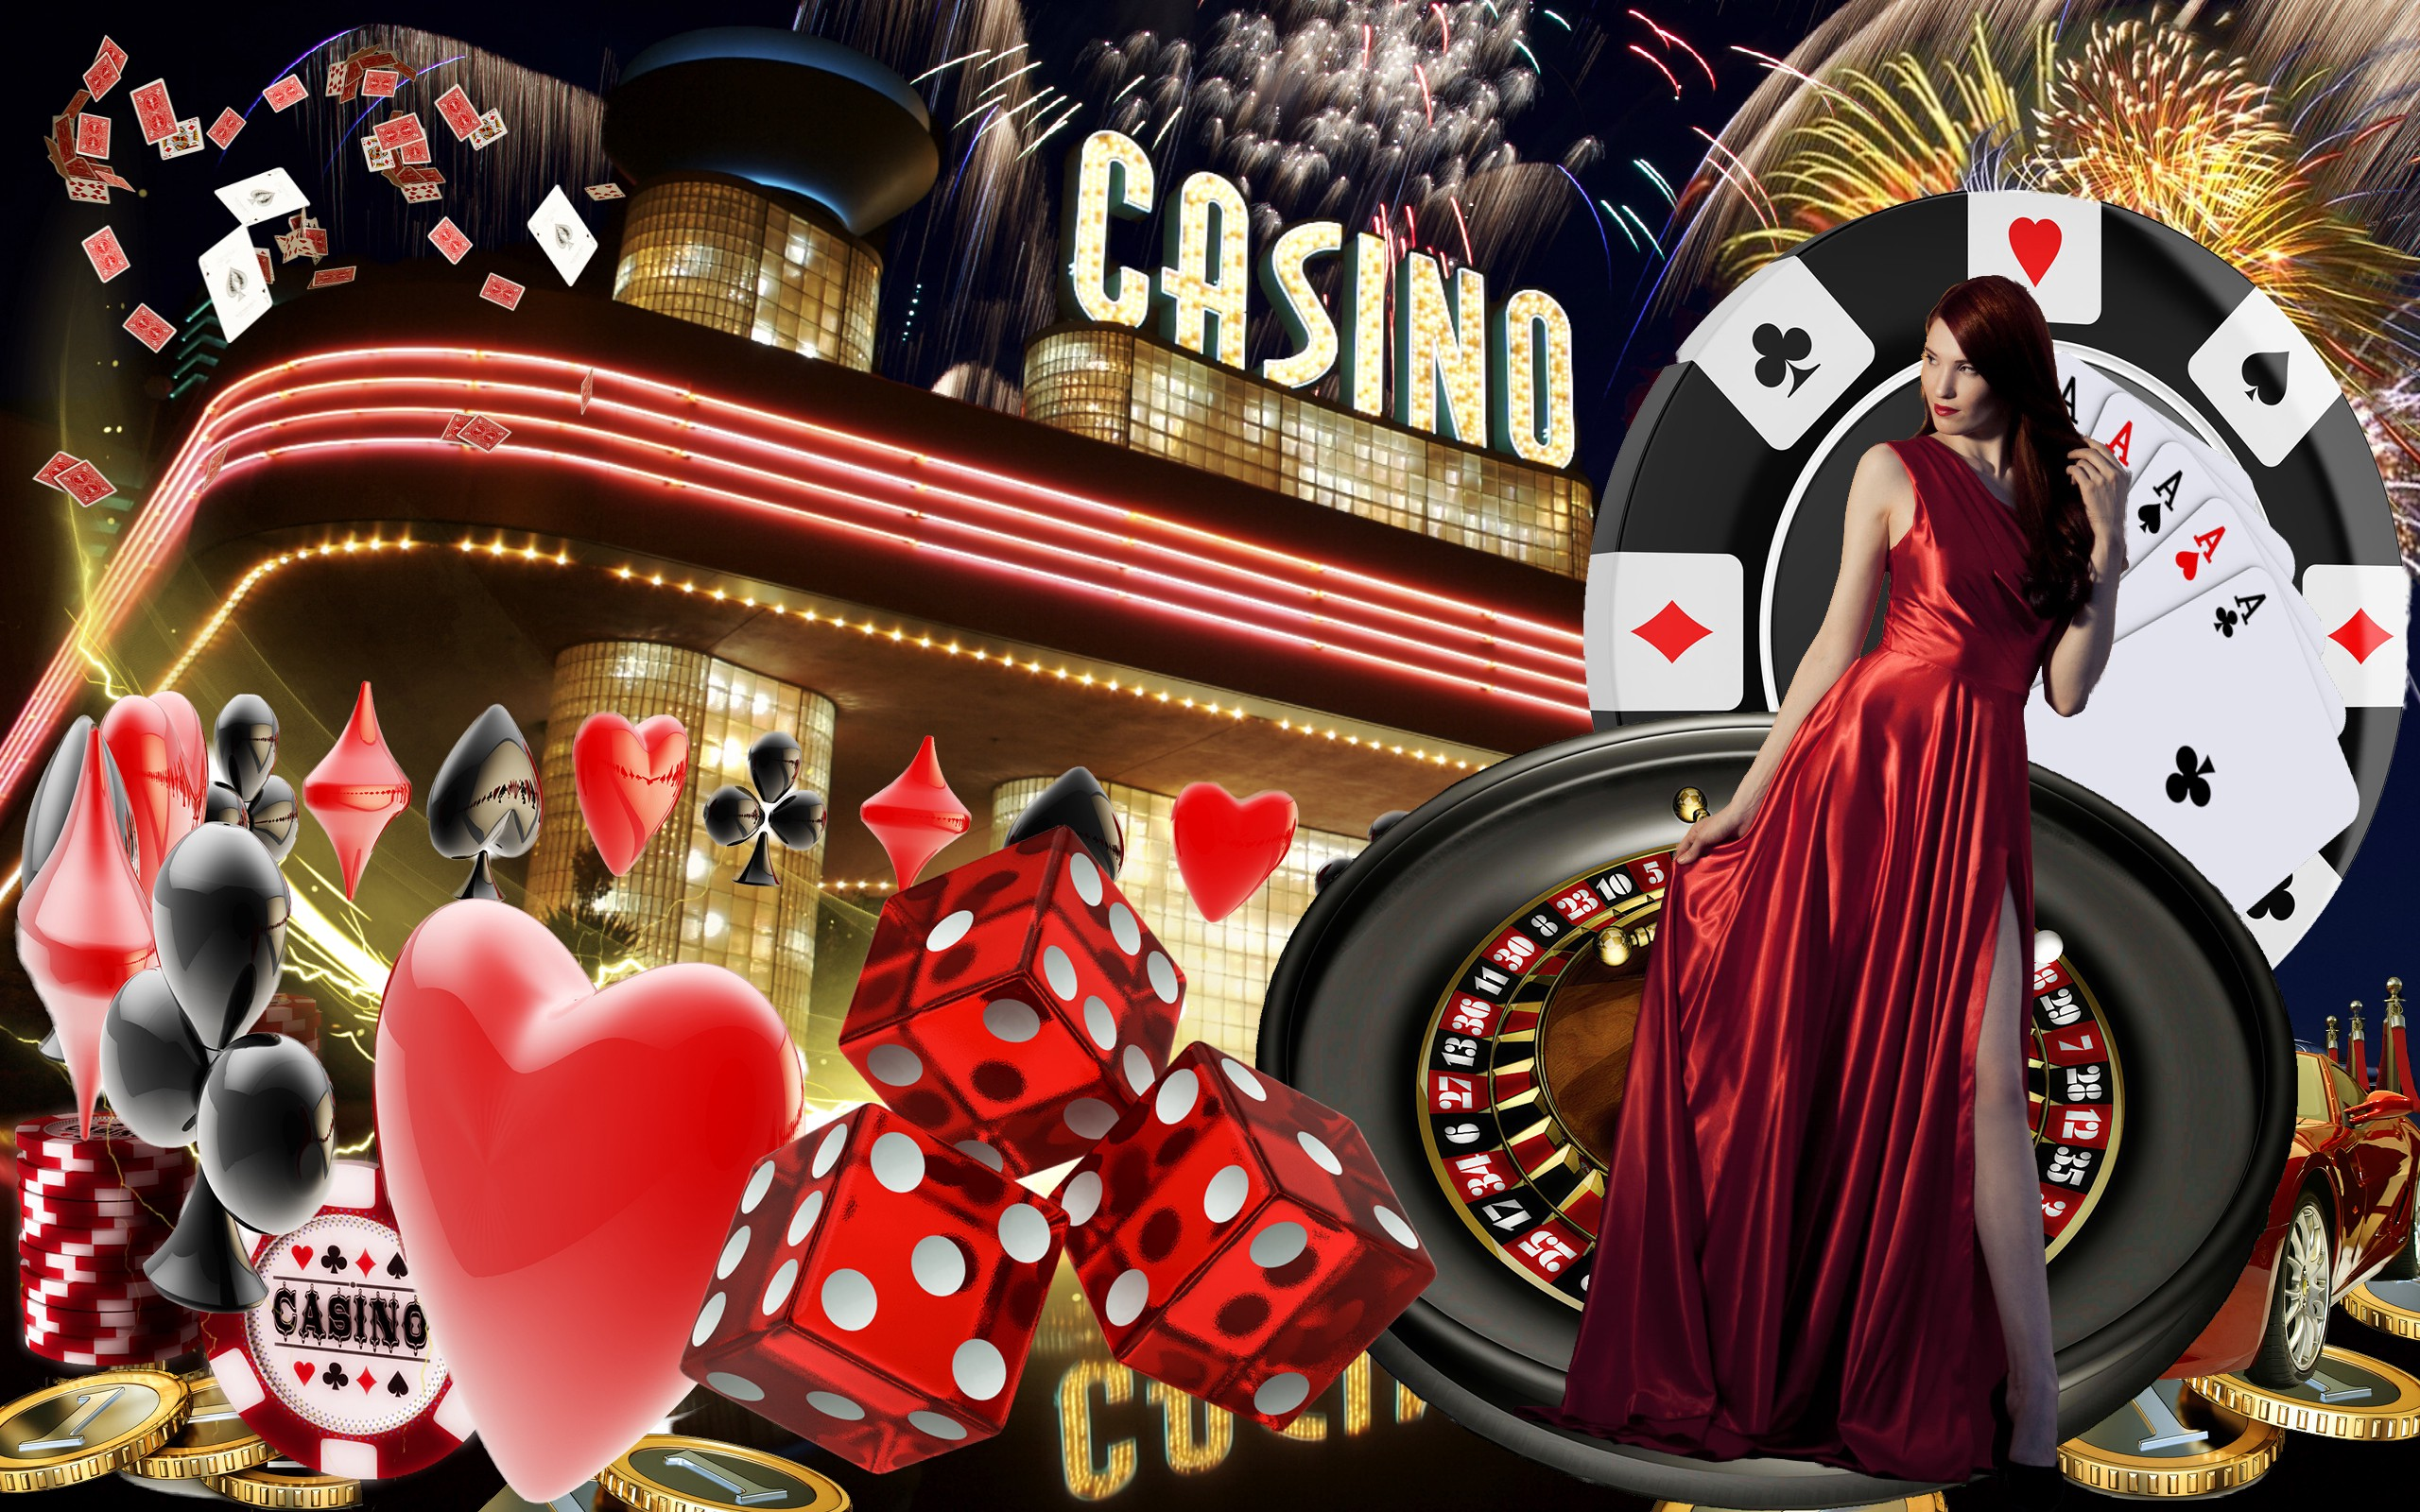 Types of Game Variations in Online Casino